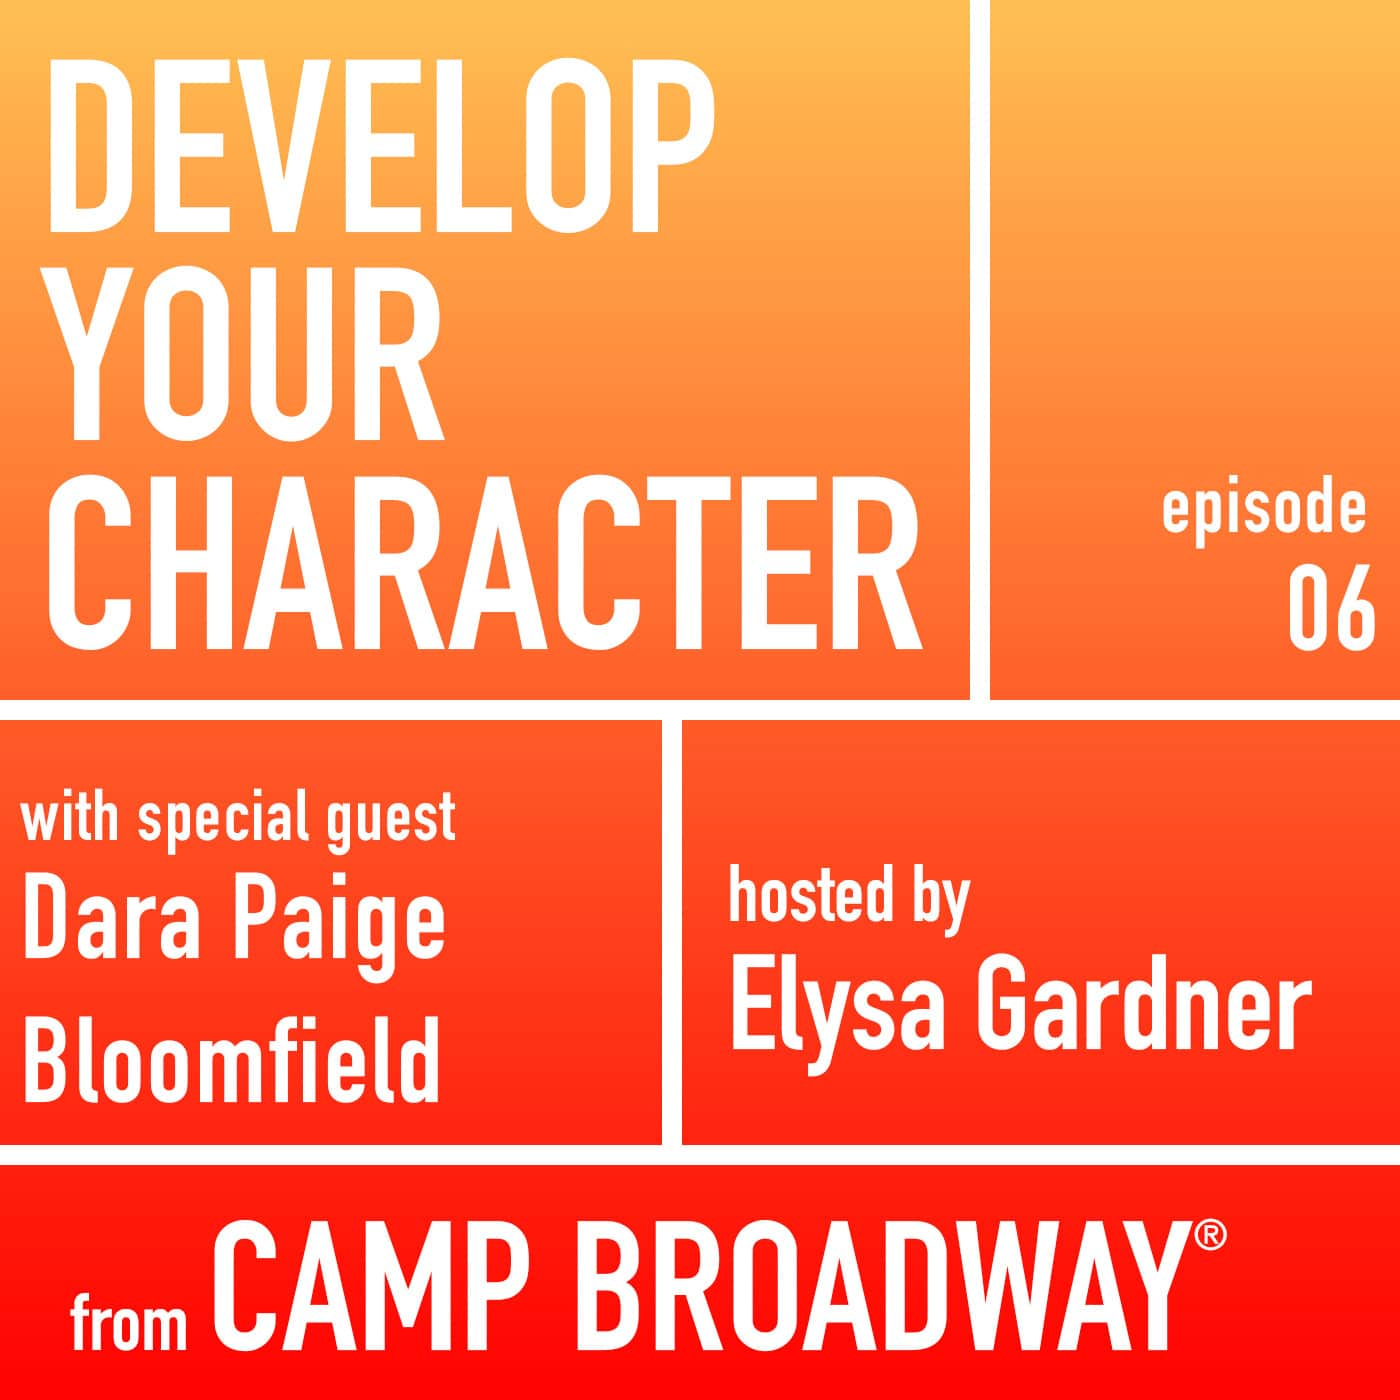 Develop Your Character Episode 6 Dara Paige Bloomfield